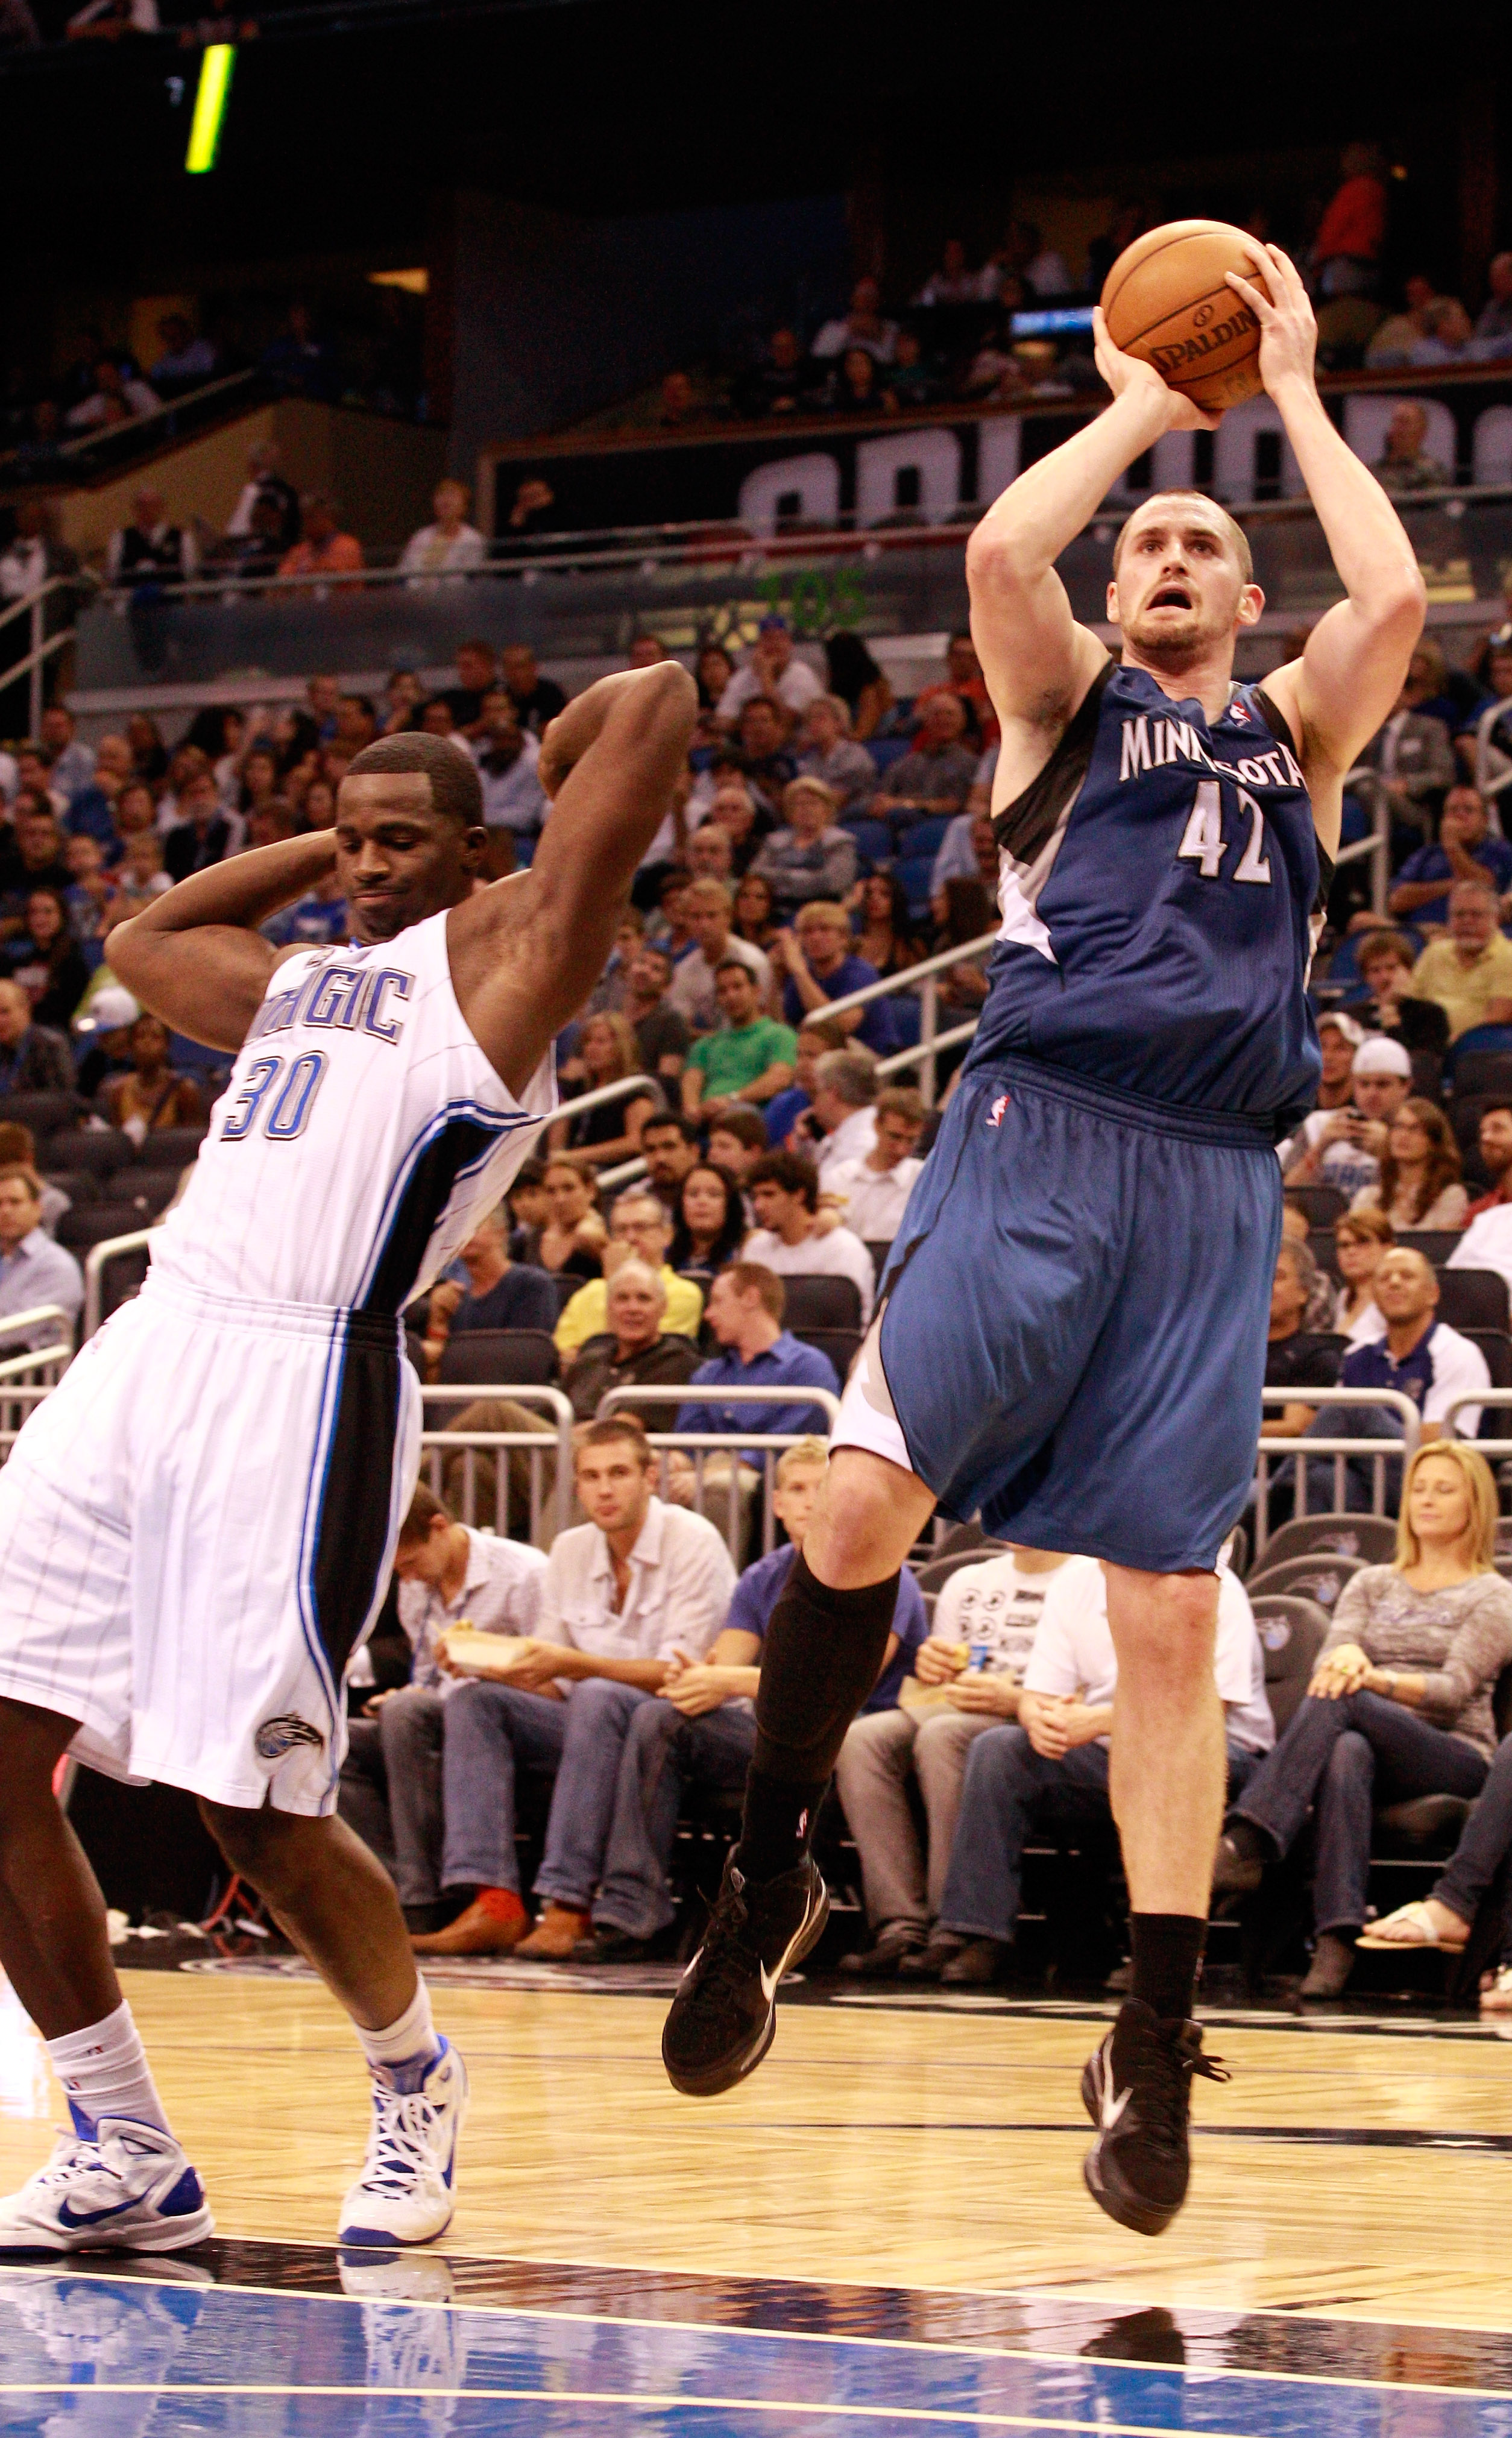 Kevin Love has dominated the NBA in a big way this year